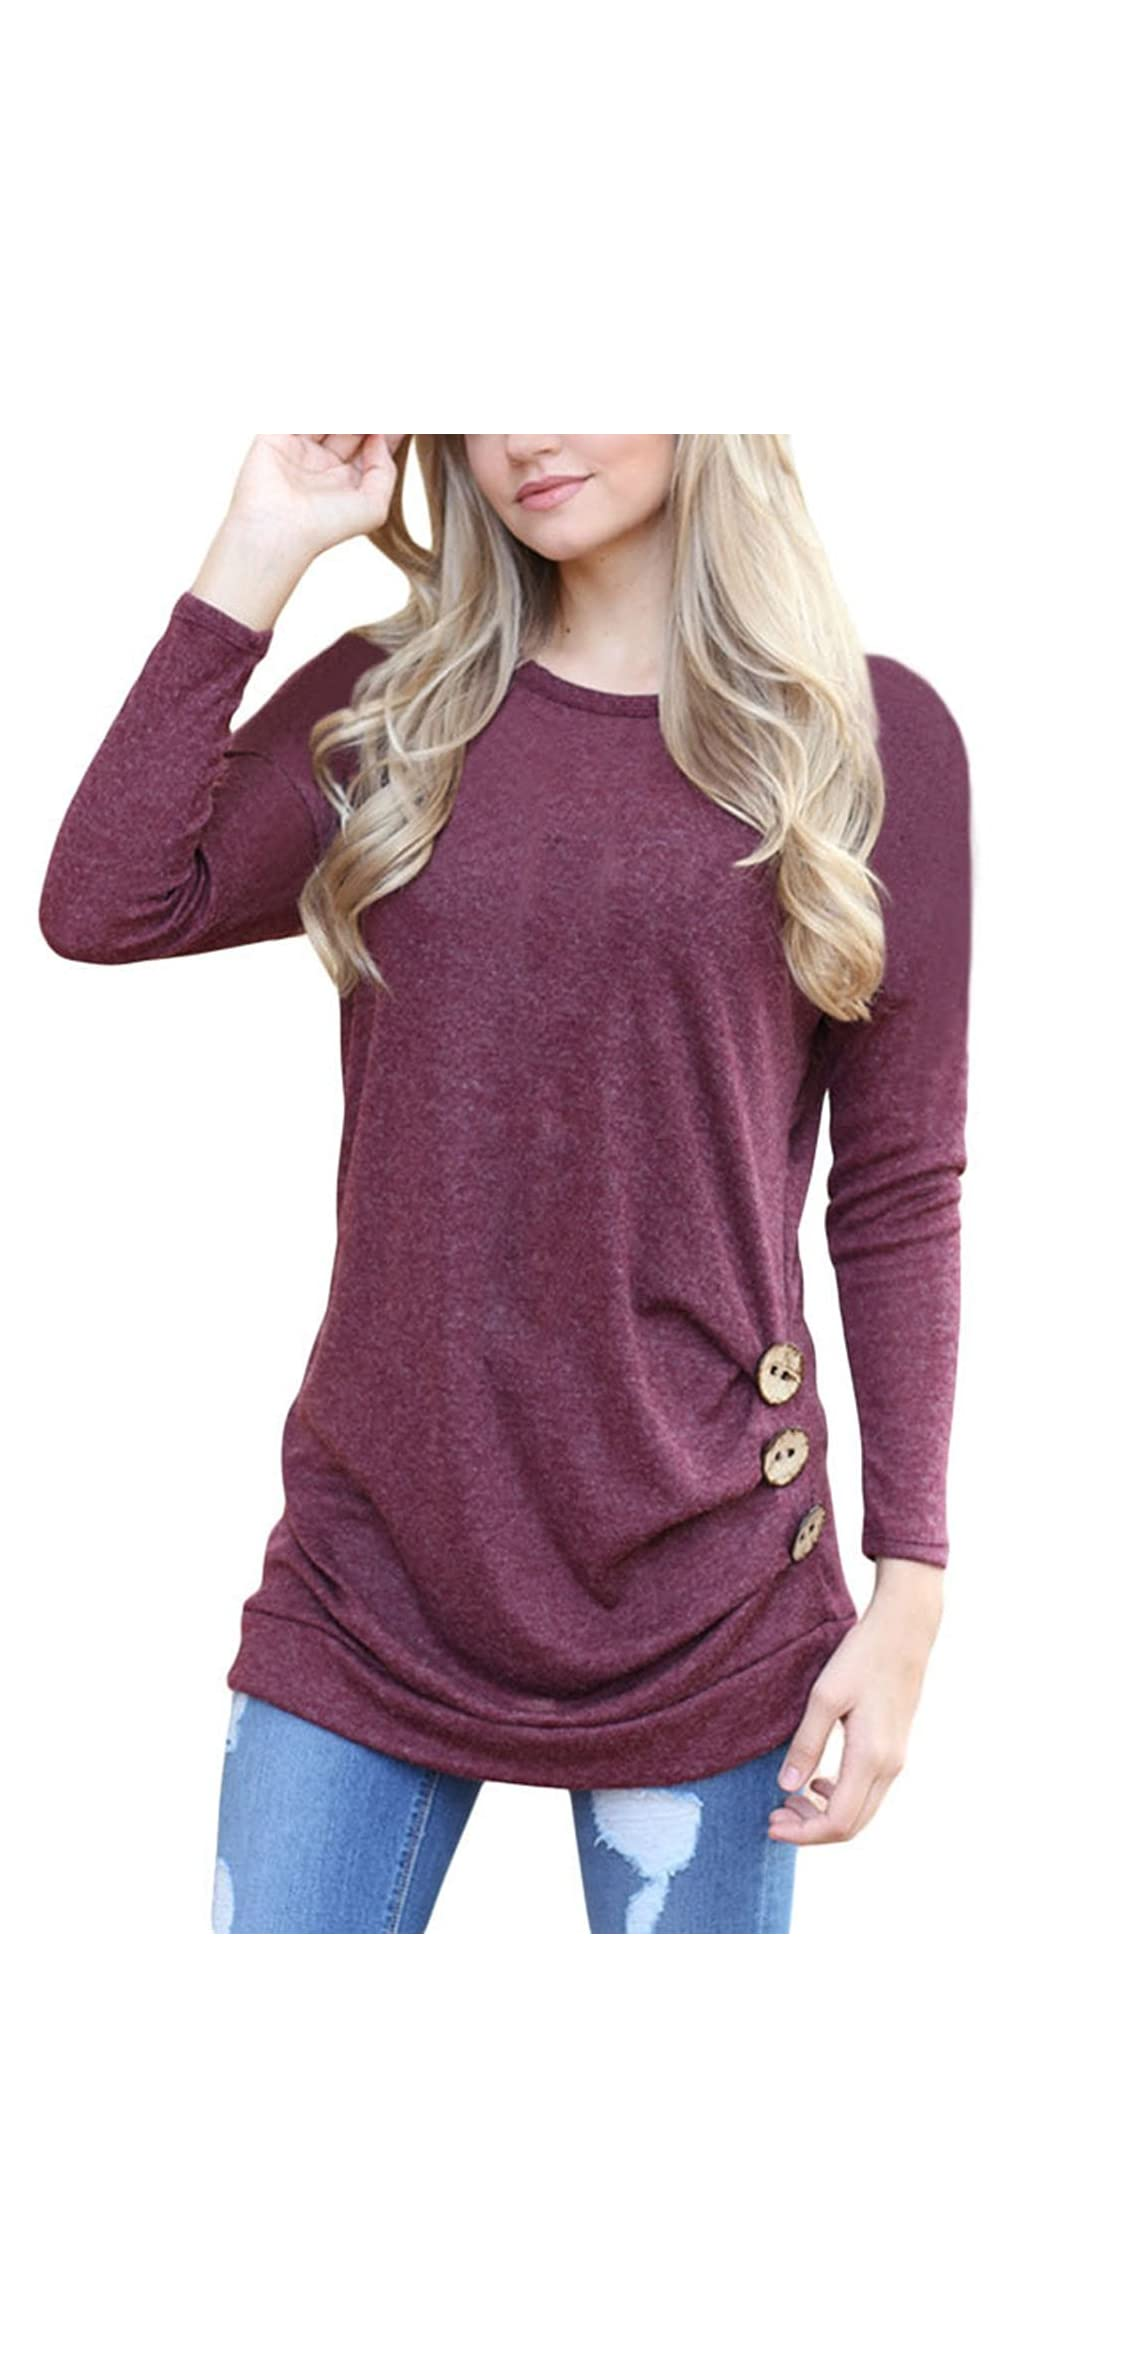 Women's Casual Long Sleeve Round Neck Solid Loose Fit Tunic